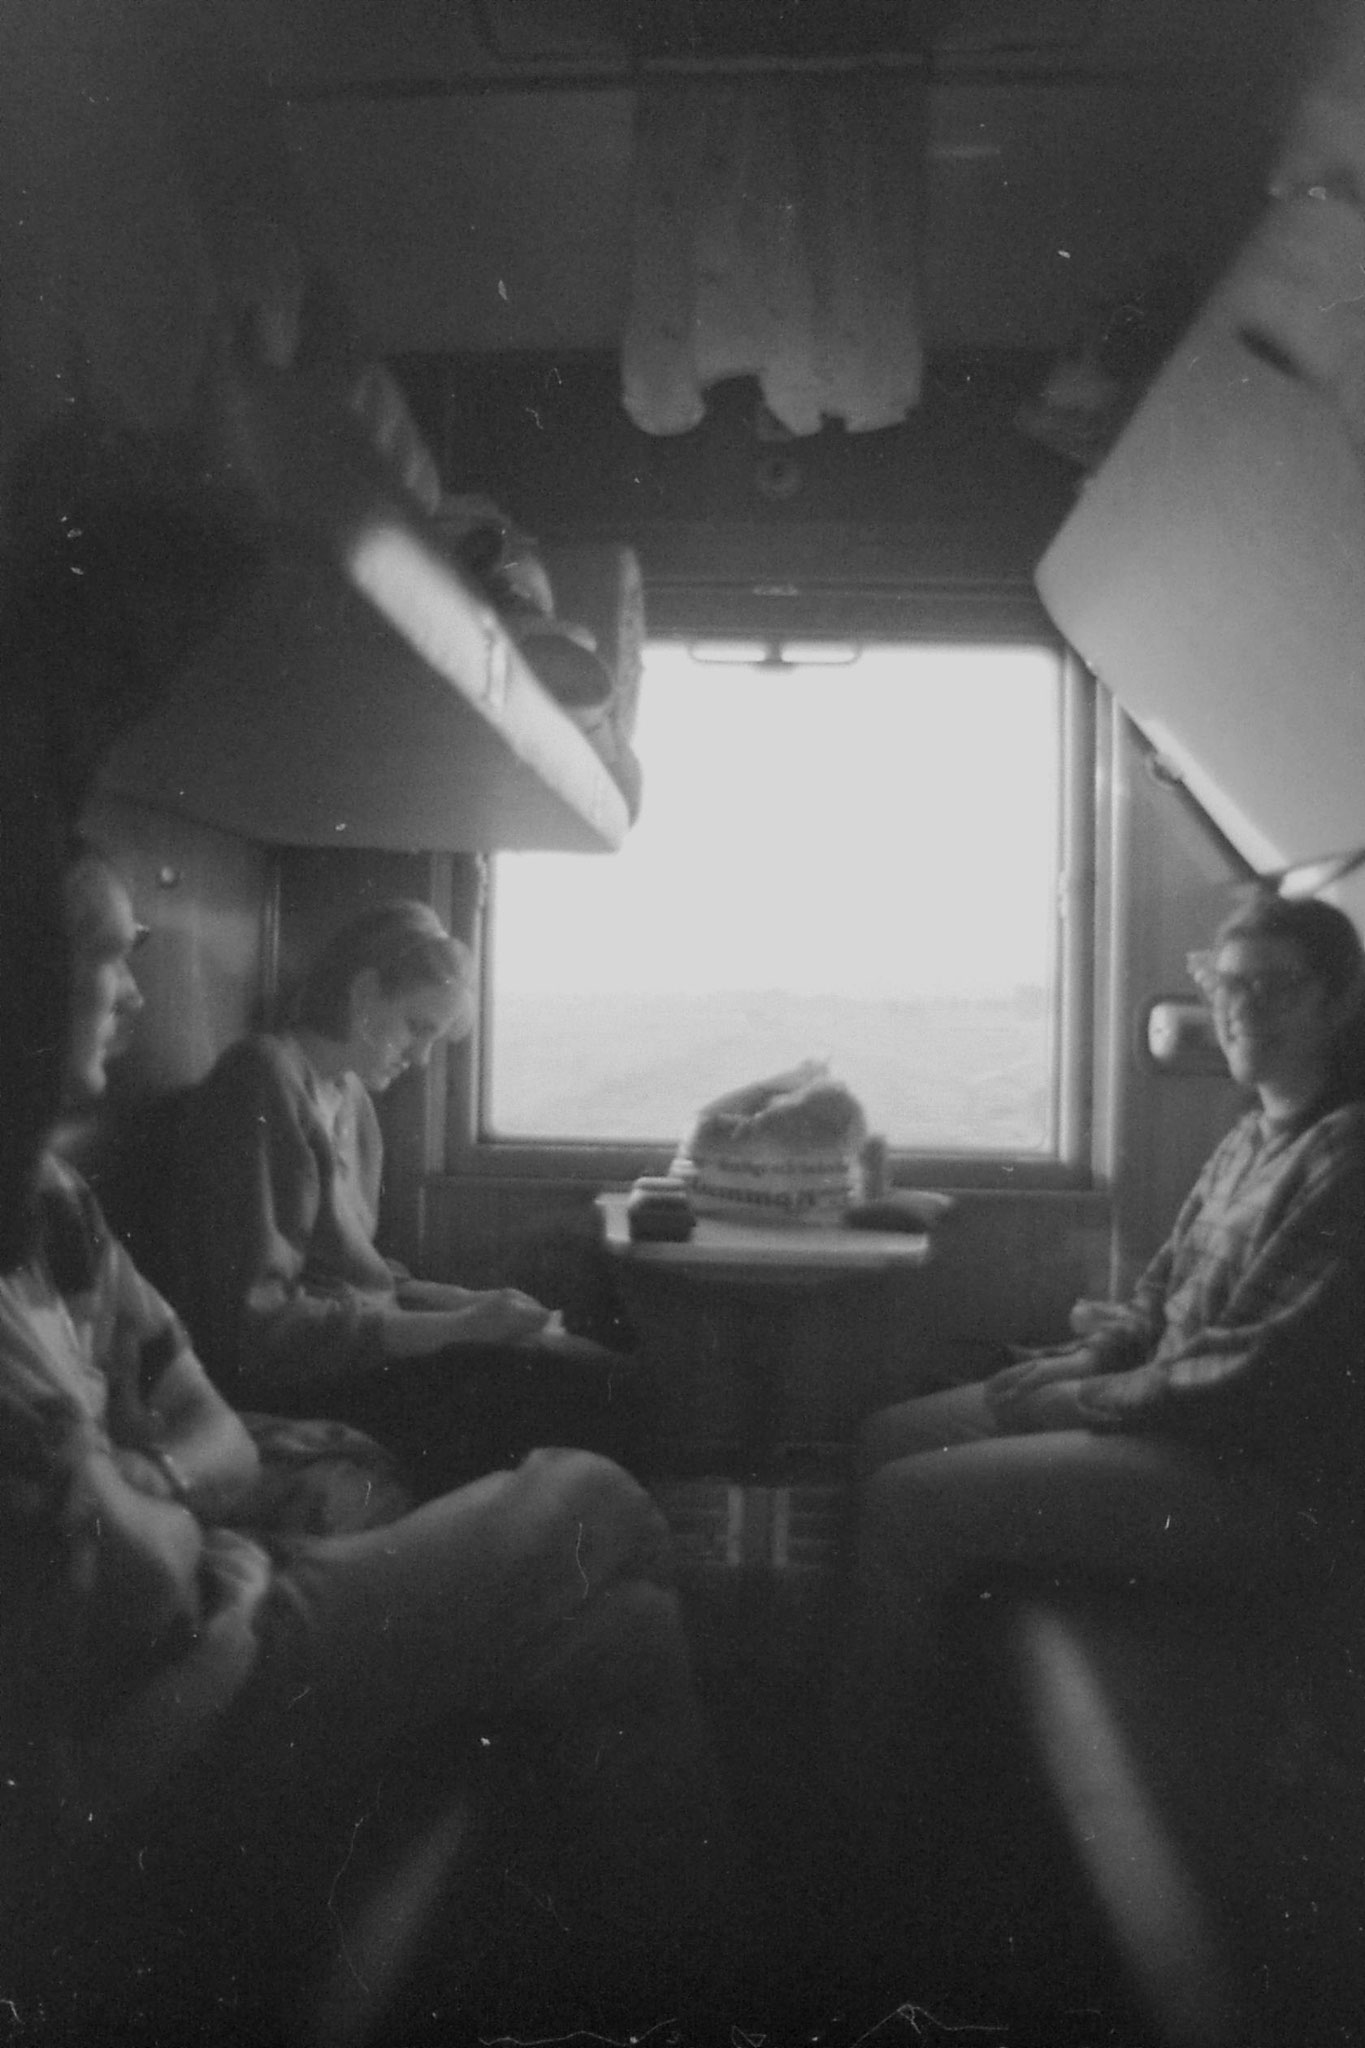 28/10/1988: 32: compartment